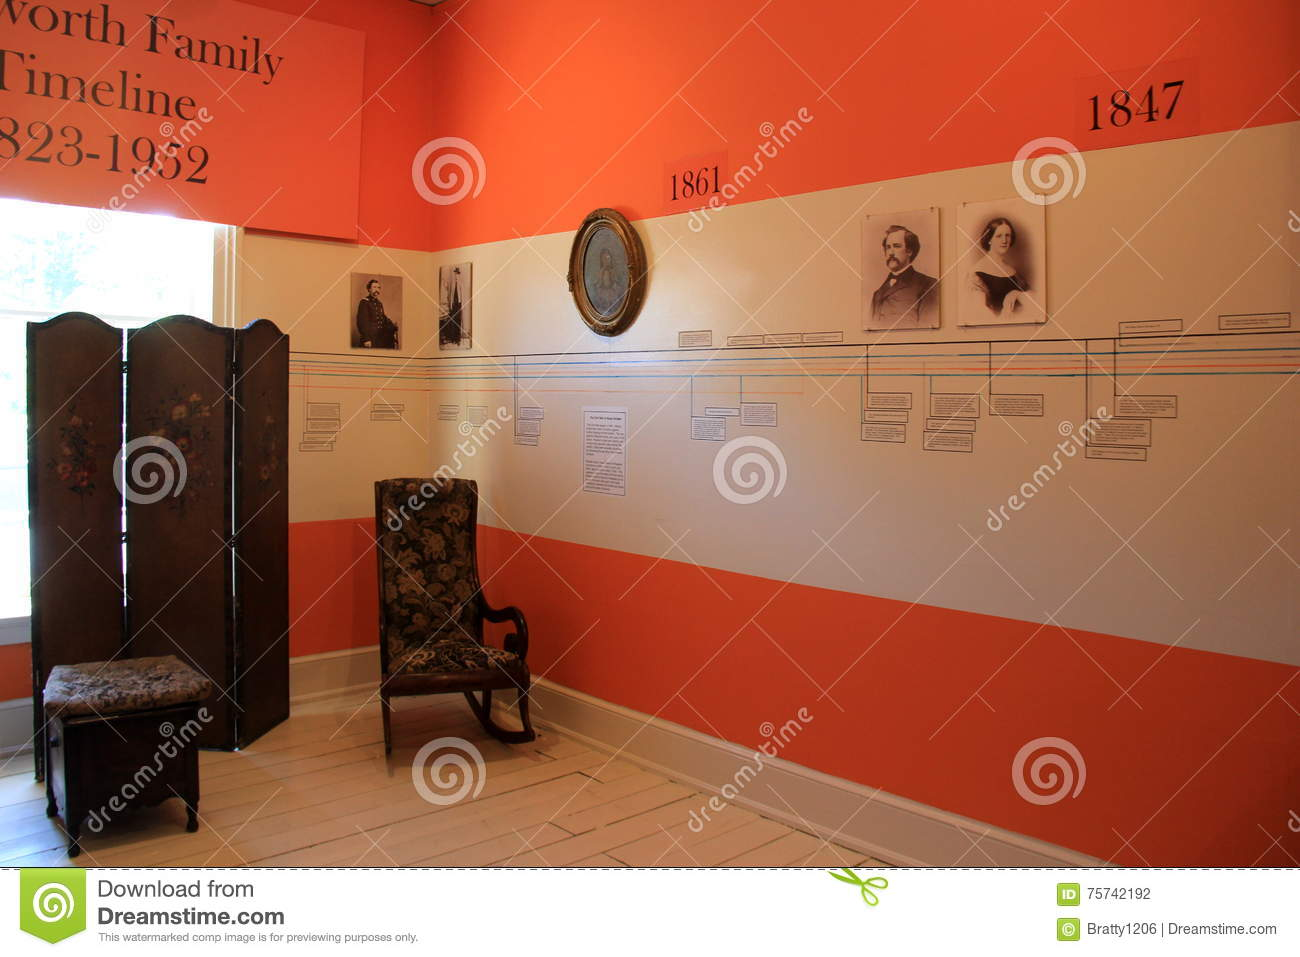 Colorful Room Covered With Timeline Of Important Walworth Family ...